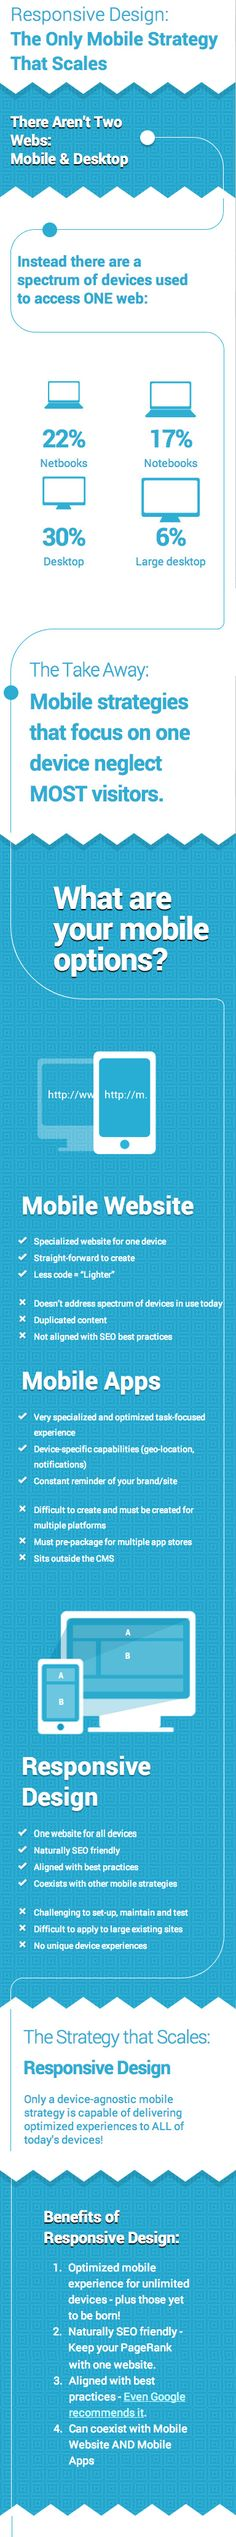 This week's infographic from Sitefinity Responsive Design: The Only Mobile Strategy That Scales is not just on the topic of responsive design, it's itself responsive. Go ahead and play around with it (hint: make your browser window skinny and wide). Digital Marketing Trends, Mobile Marketing, Marketing Tools, Business Marketing, Internet Marketing, Business Infographics, Business Tips, Keyword Planner, Responsive Web Design